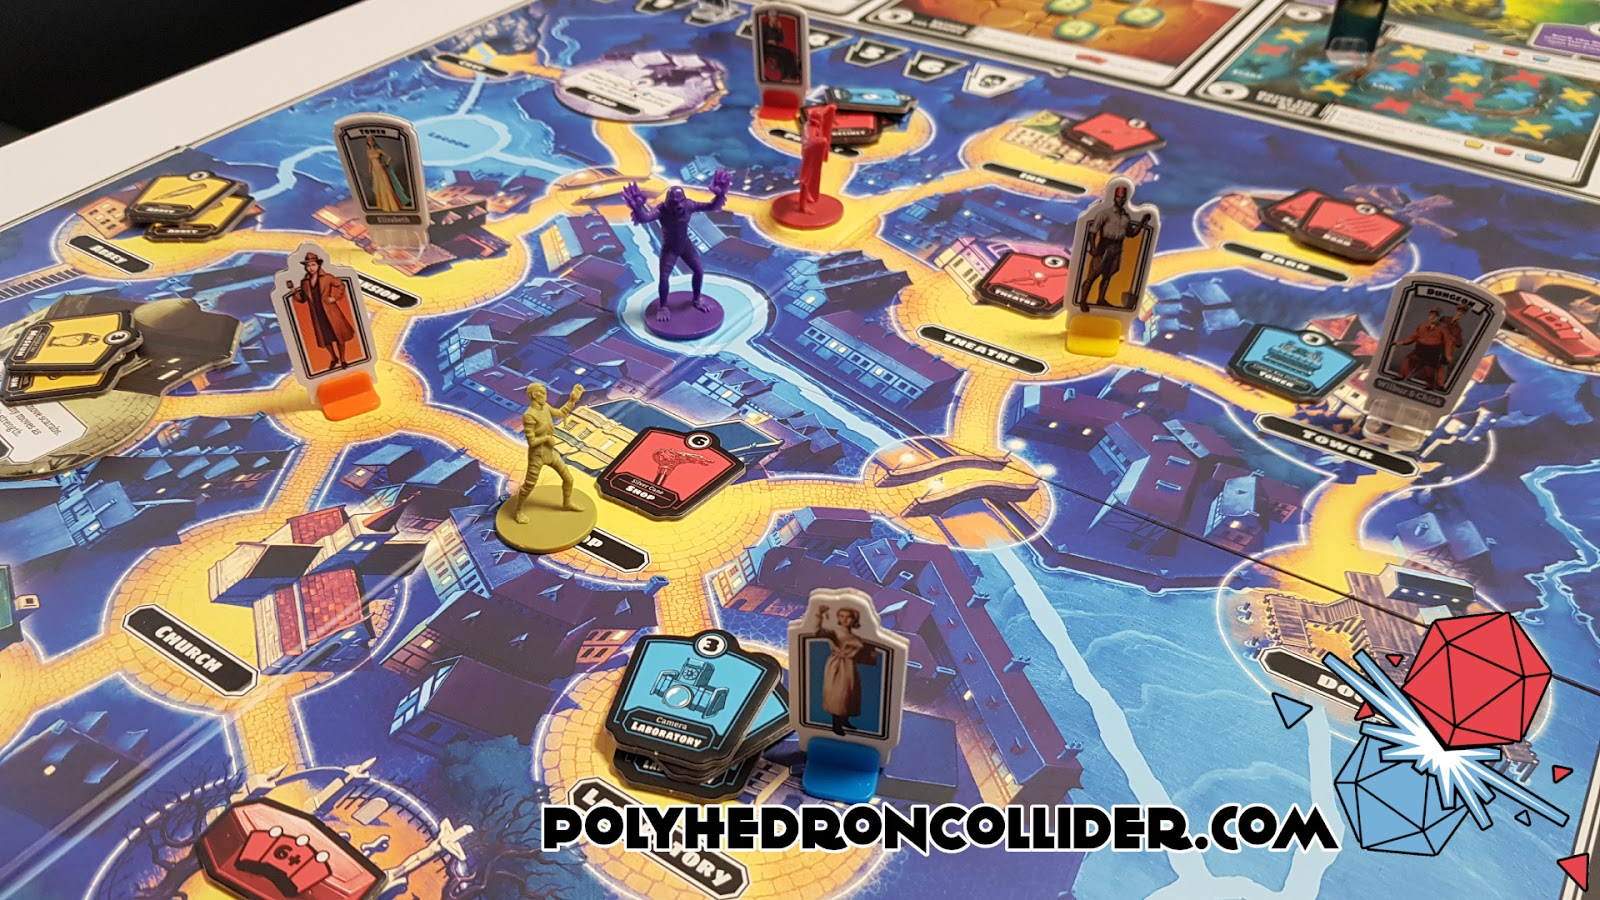 Polyhedron Collider Horrified Board Game Review - In Play